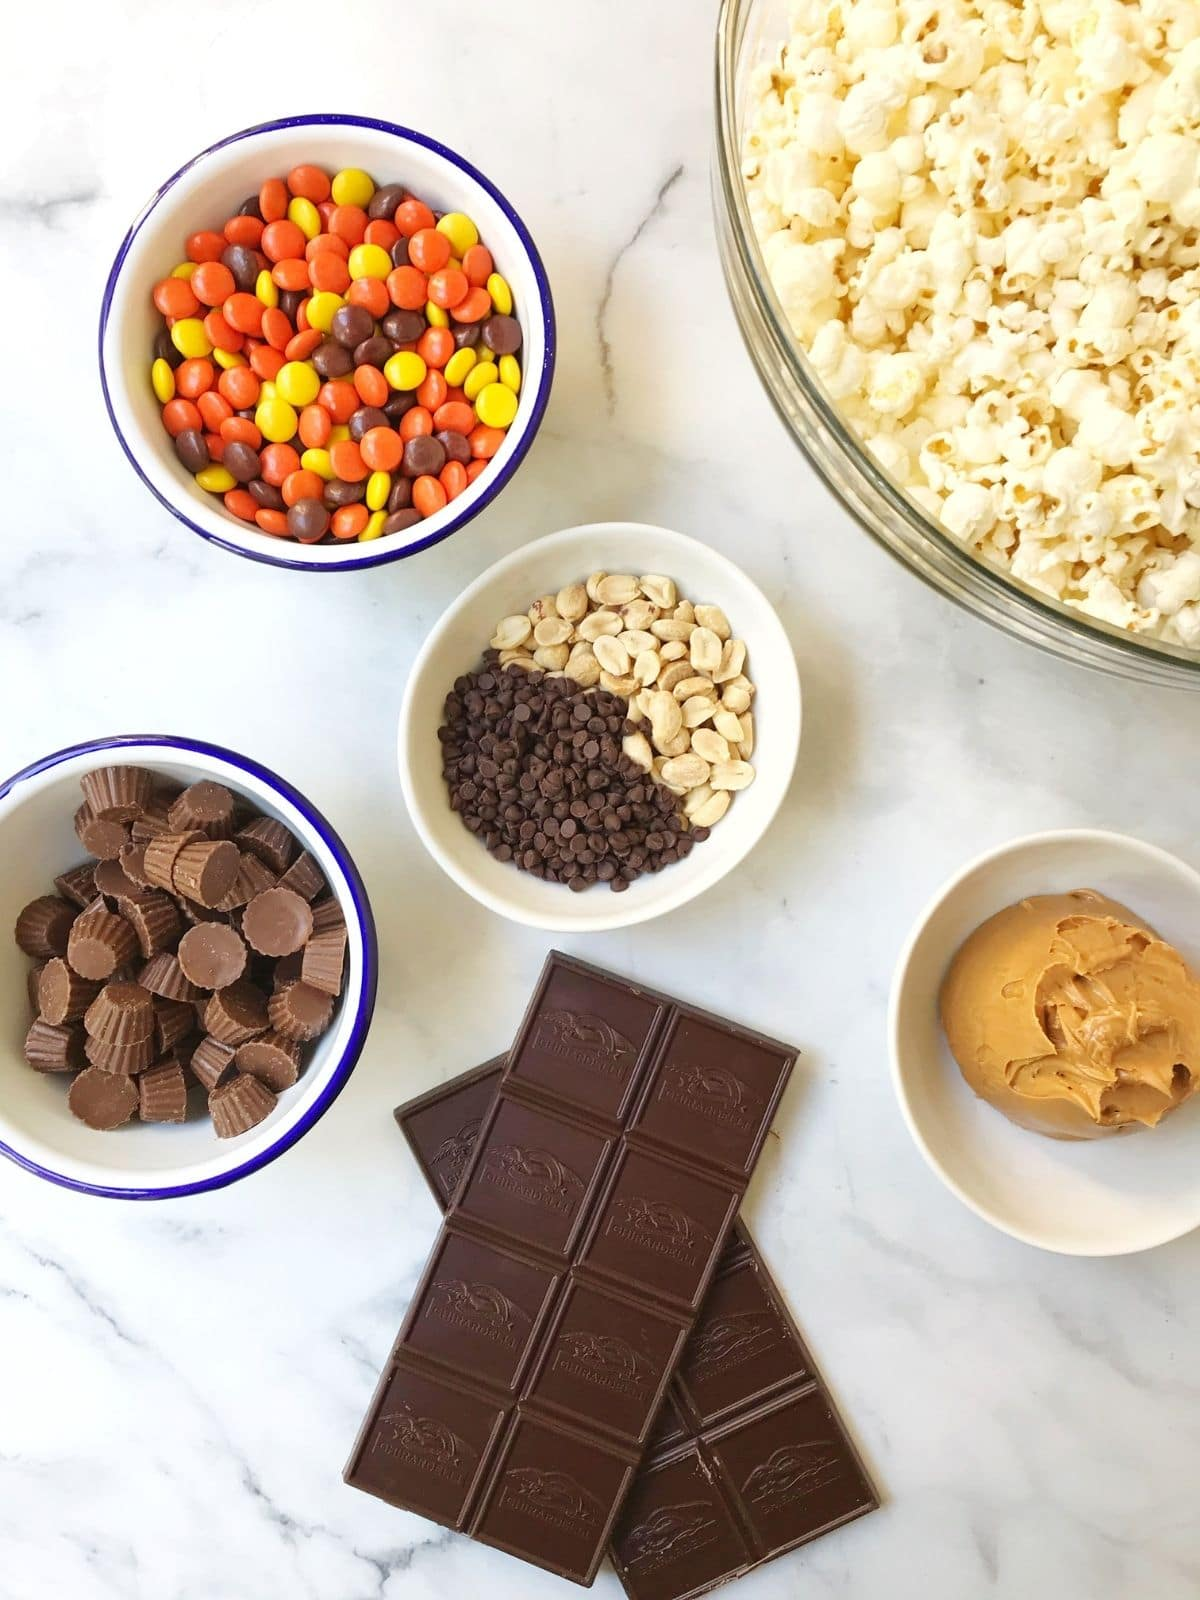 bowls of ingredients - popcorn, chocolate, peanut butter, candy and nuts